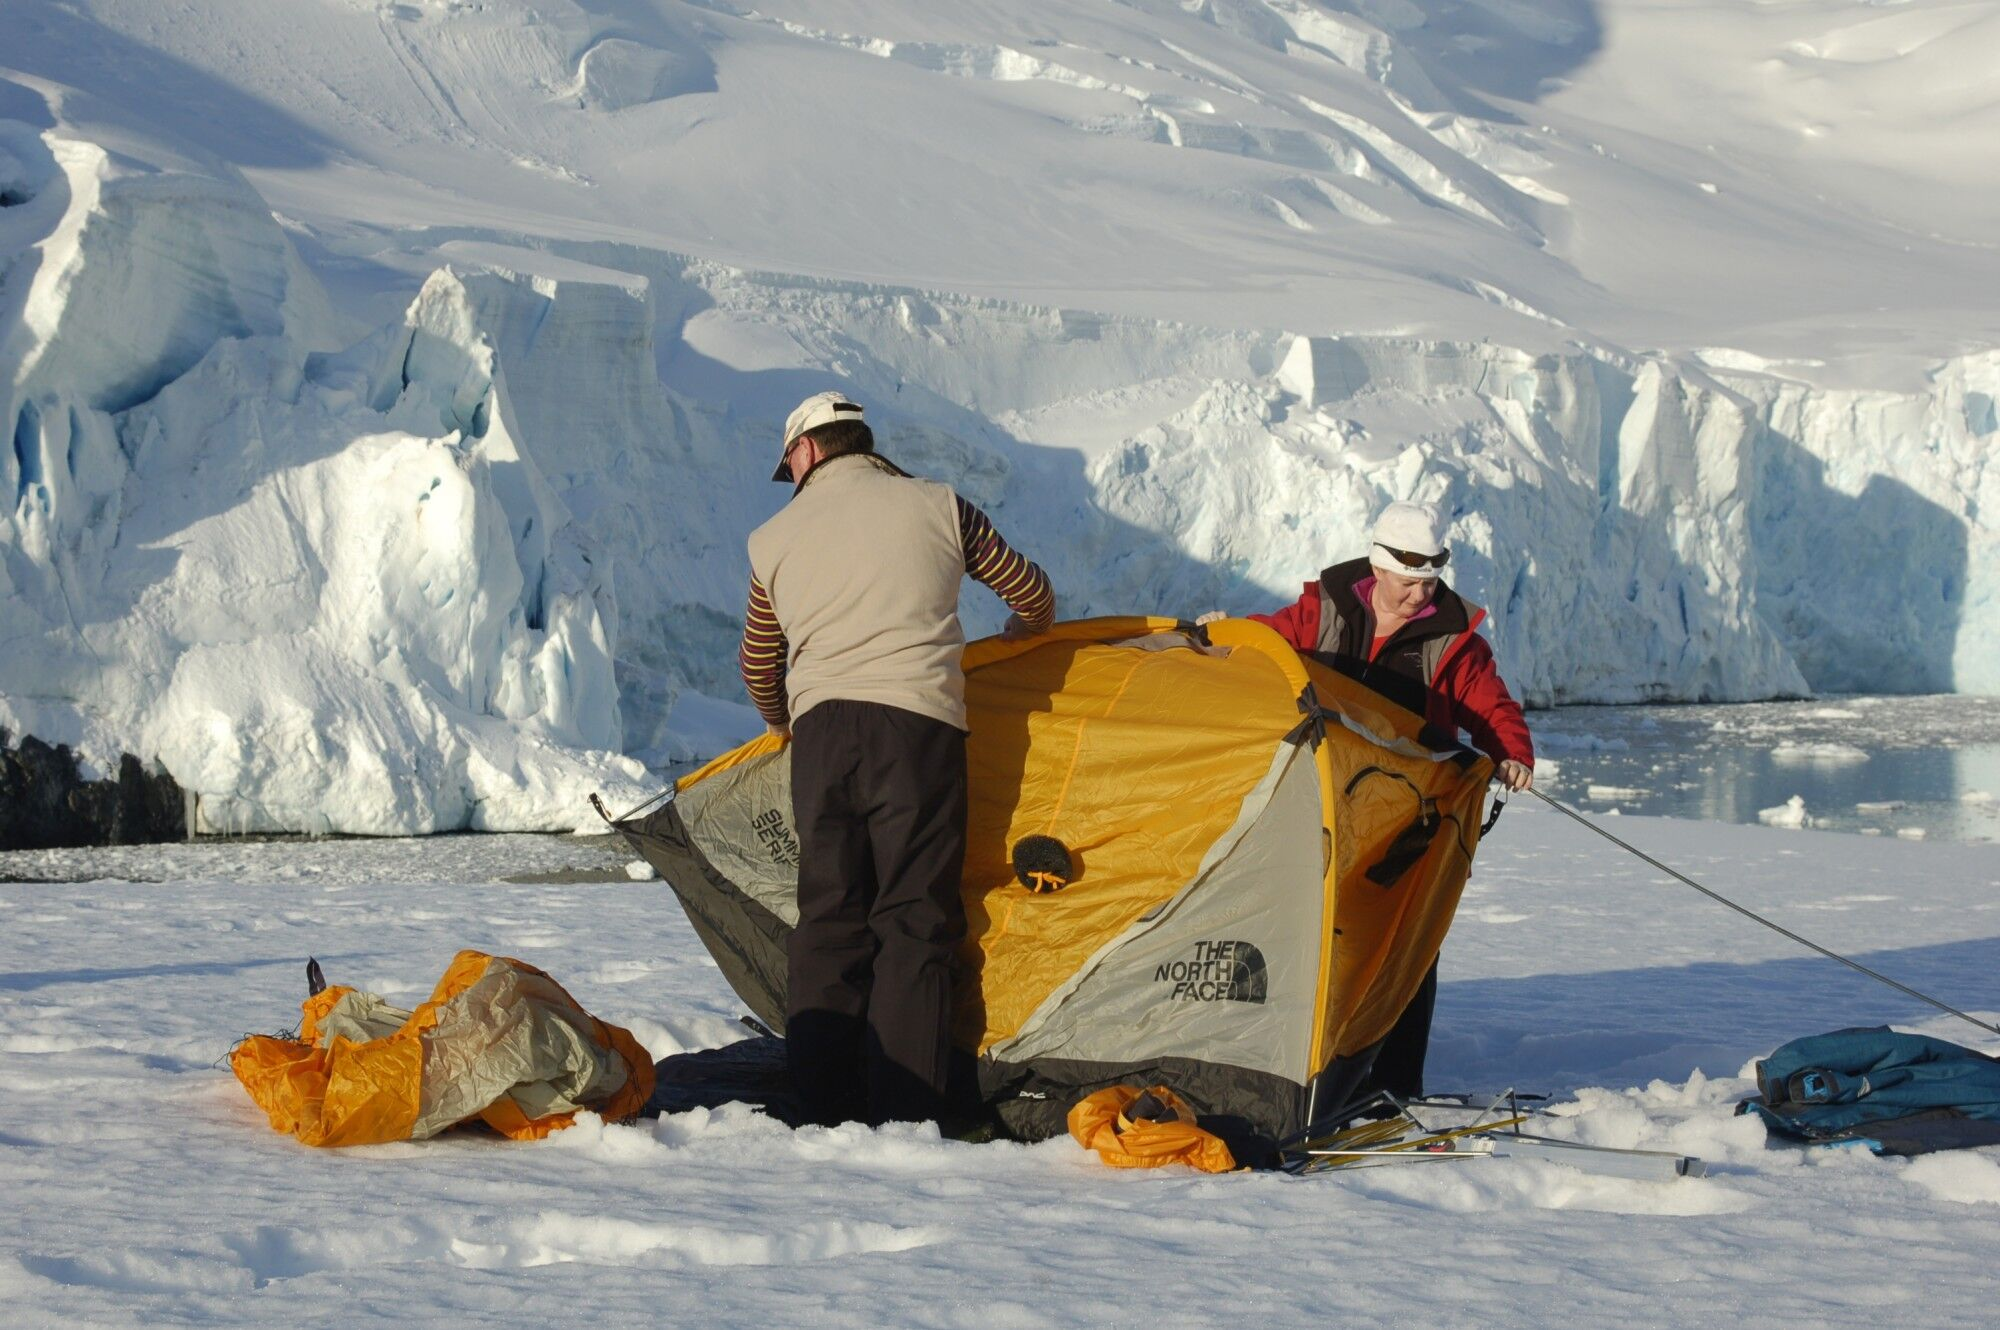 camping in antarctica, an additional option  on some polar expedition cruises